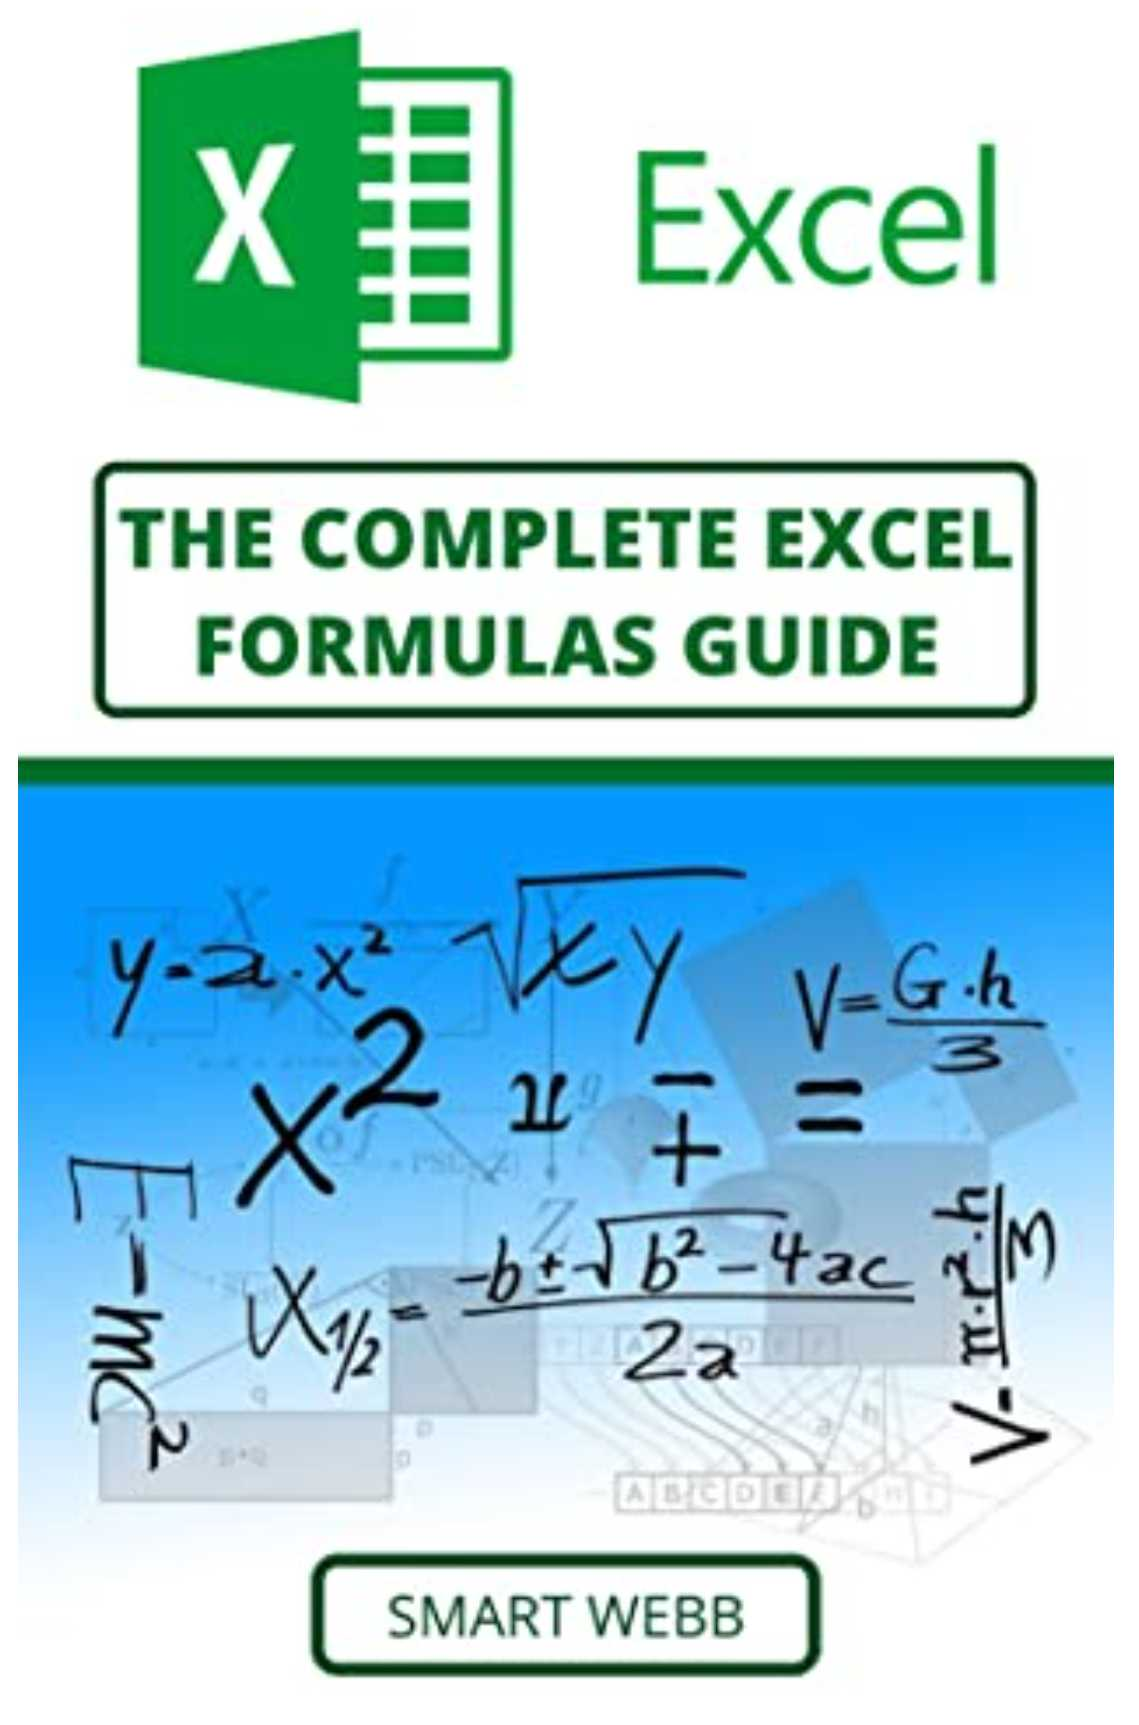 The Complete Excel Formulas Guide: The New Step By Step Excel User Guide For Beginners